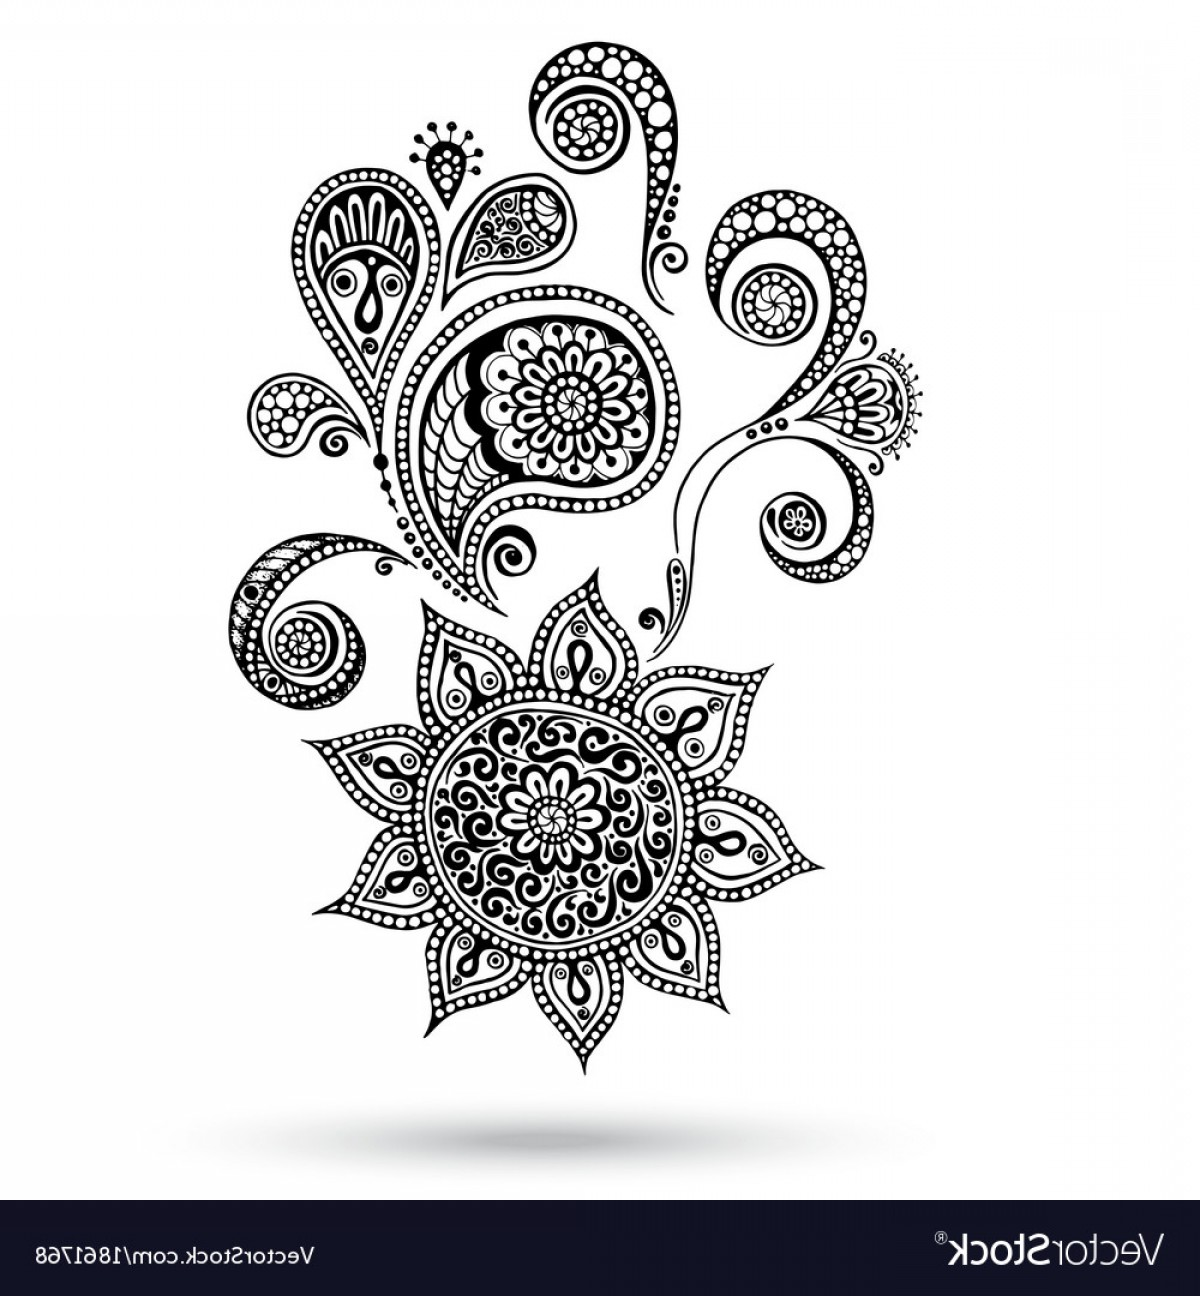 Paisley Swirl Flower Vector: Henna Flowers And Paisley Mehndi Tattoo Doodles Vector